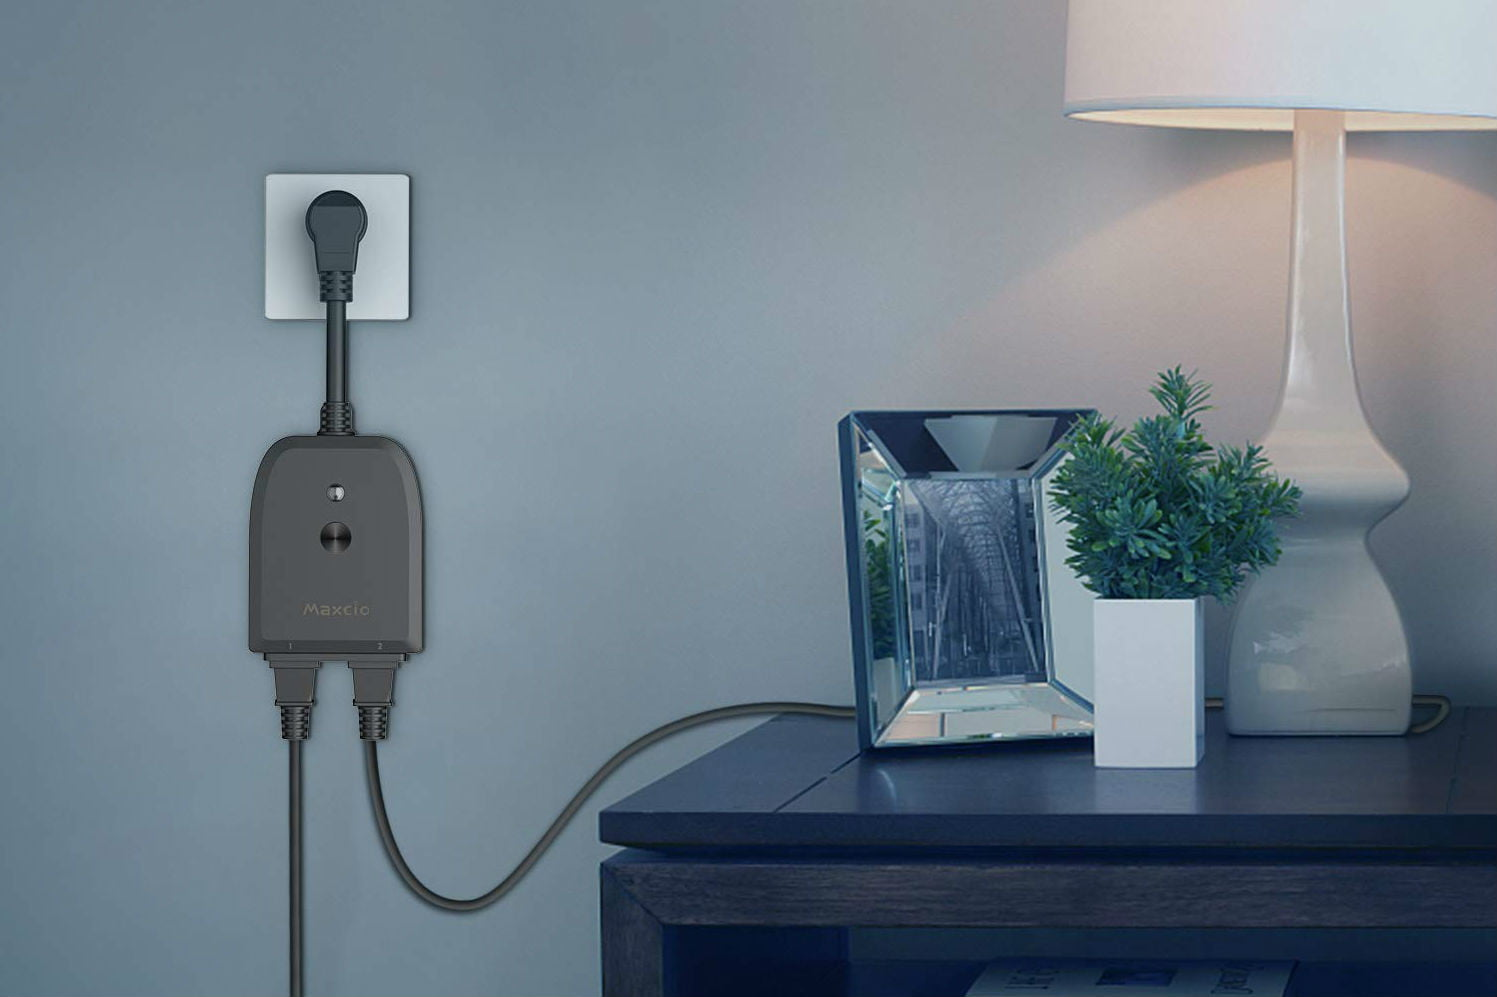 What are smart plugs?